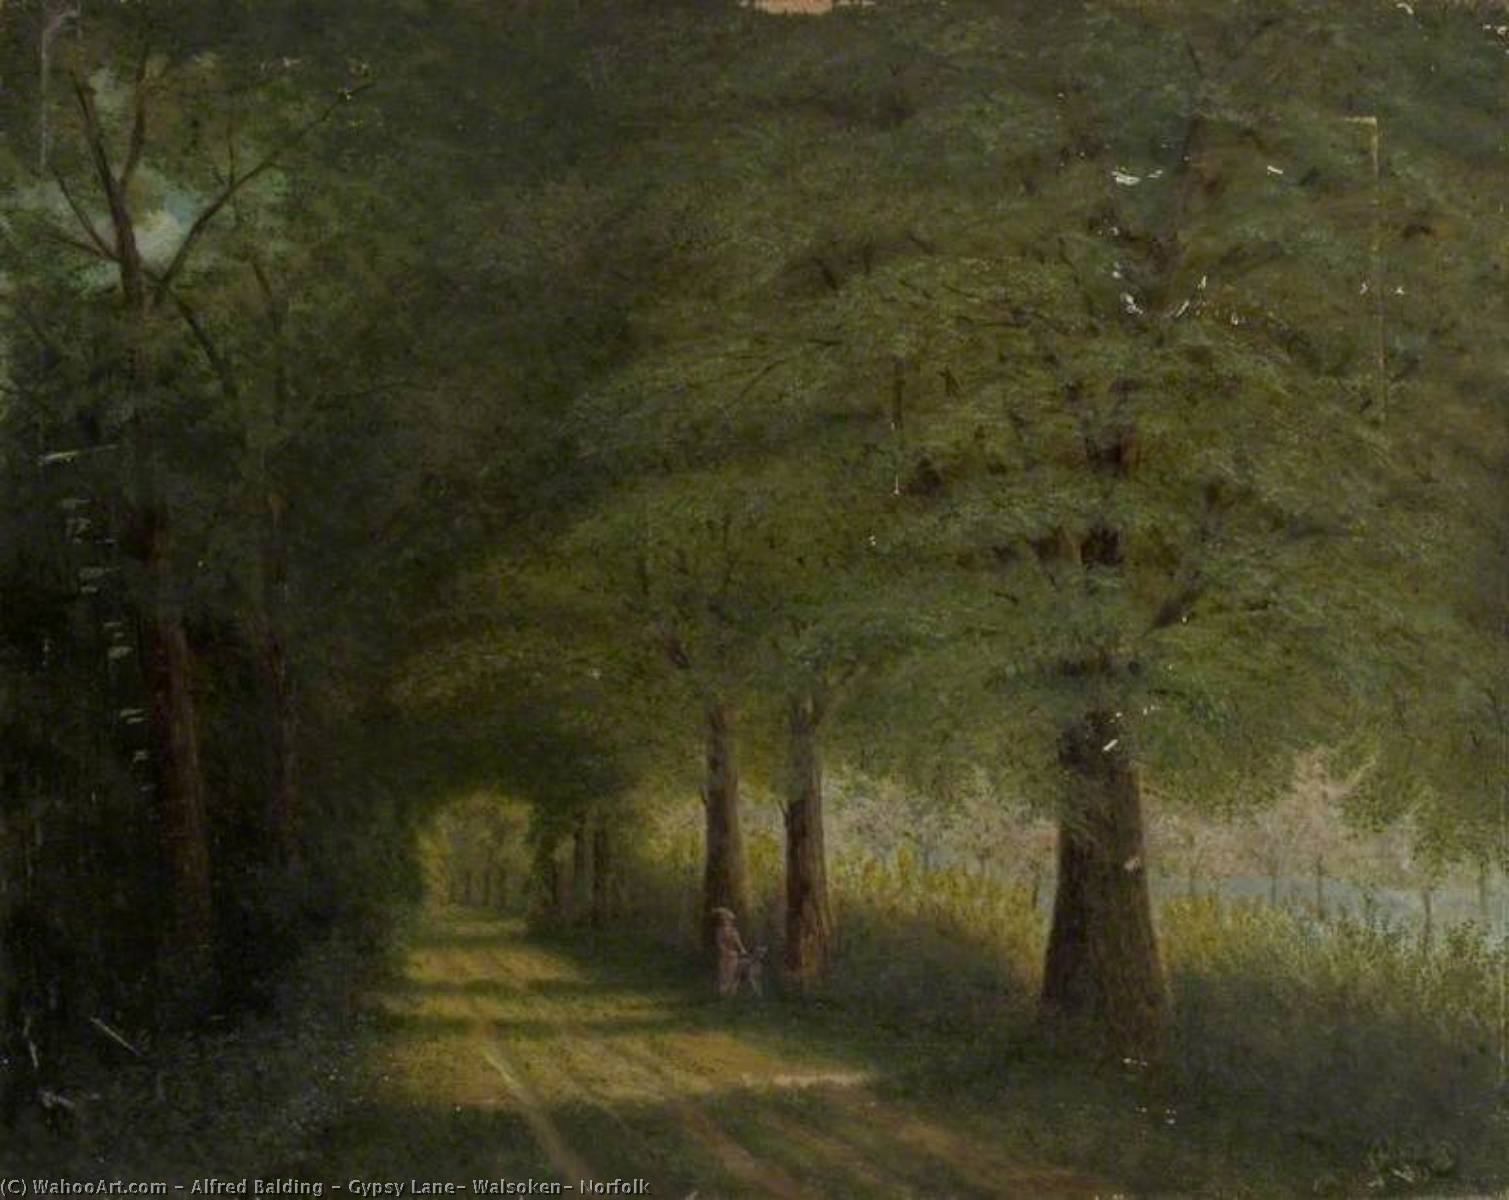 Gypsy Lane, Walsoken, Norfolk, 1913 by Alfred Balding | Art Reproduction | WahooArt.com